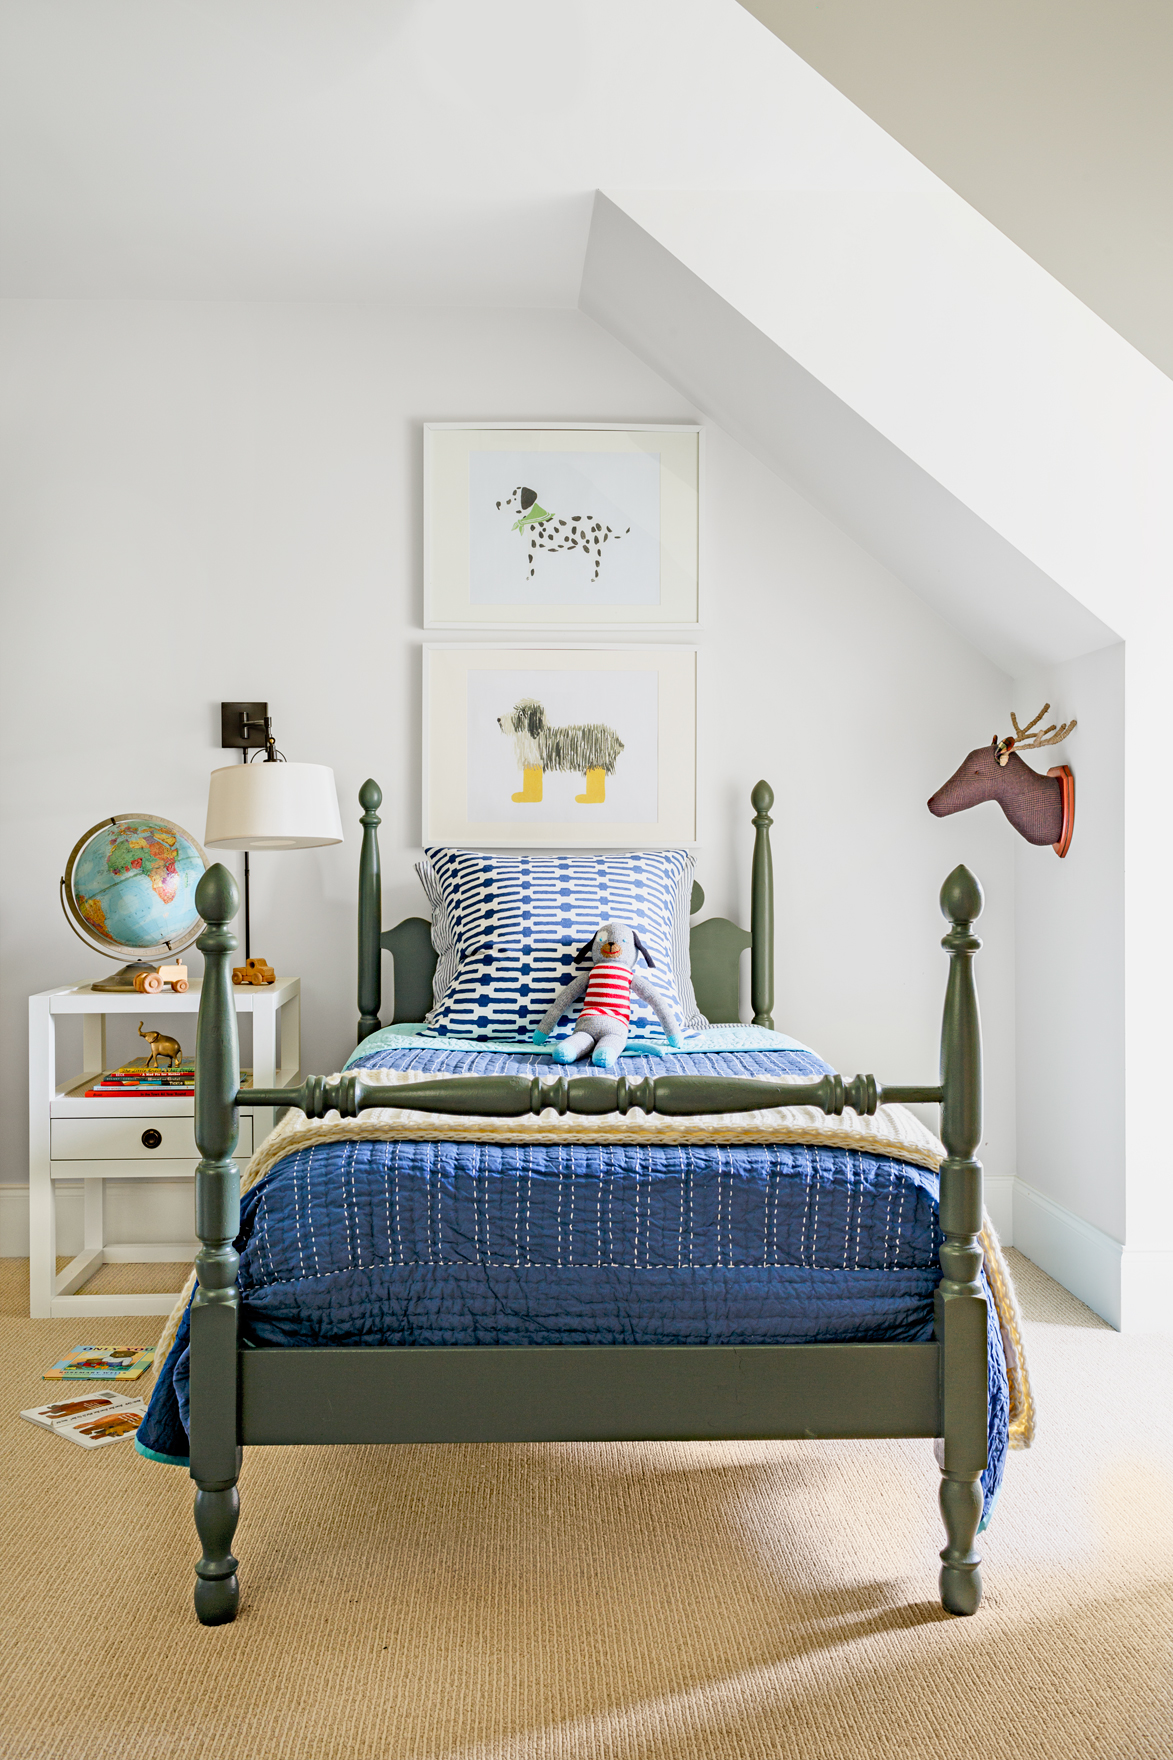 Of Girls Without Dress In Bedroom With Boys Kids Room Ideas Design And Decorating Ideas For Kids Rooms